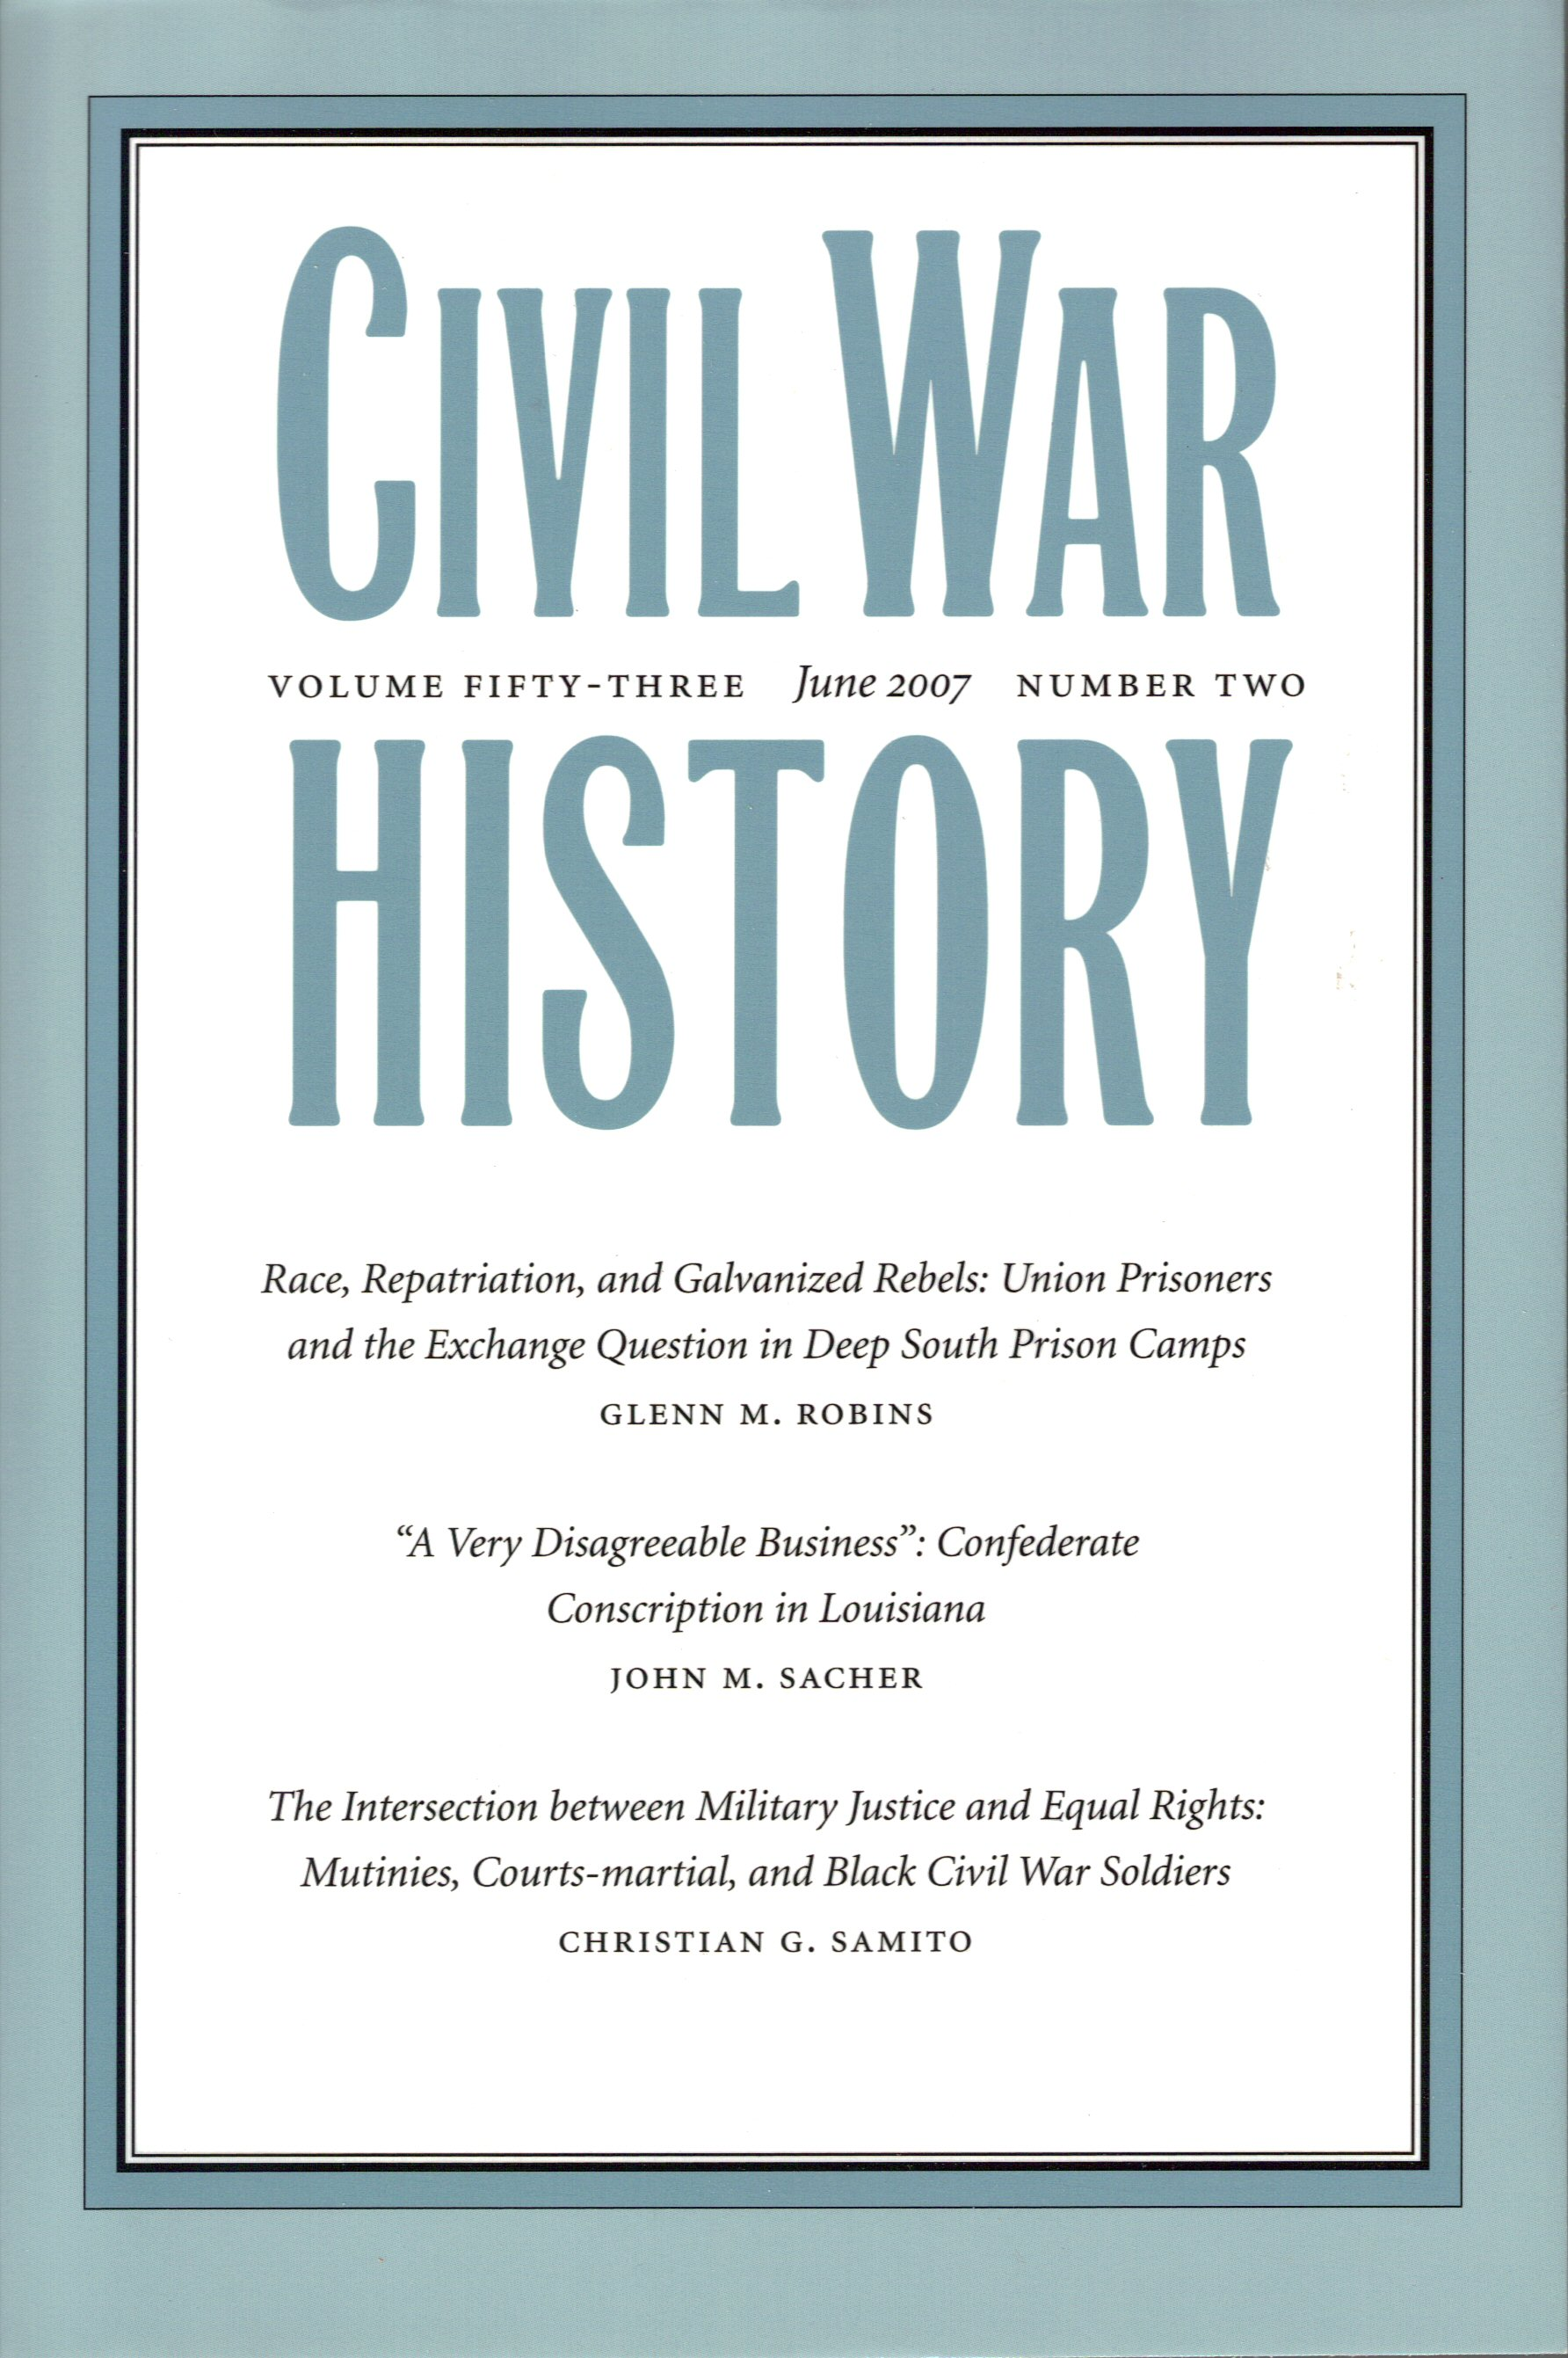 Civil War History, Volume 53, Number 2 (June 2007)